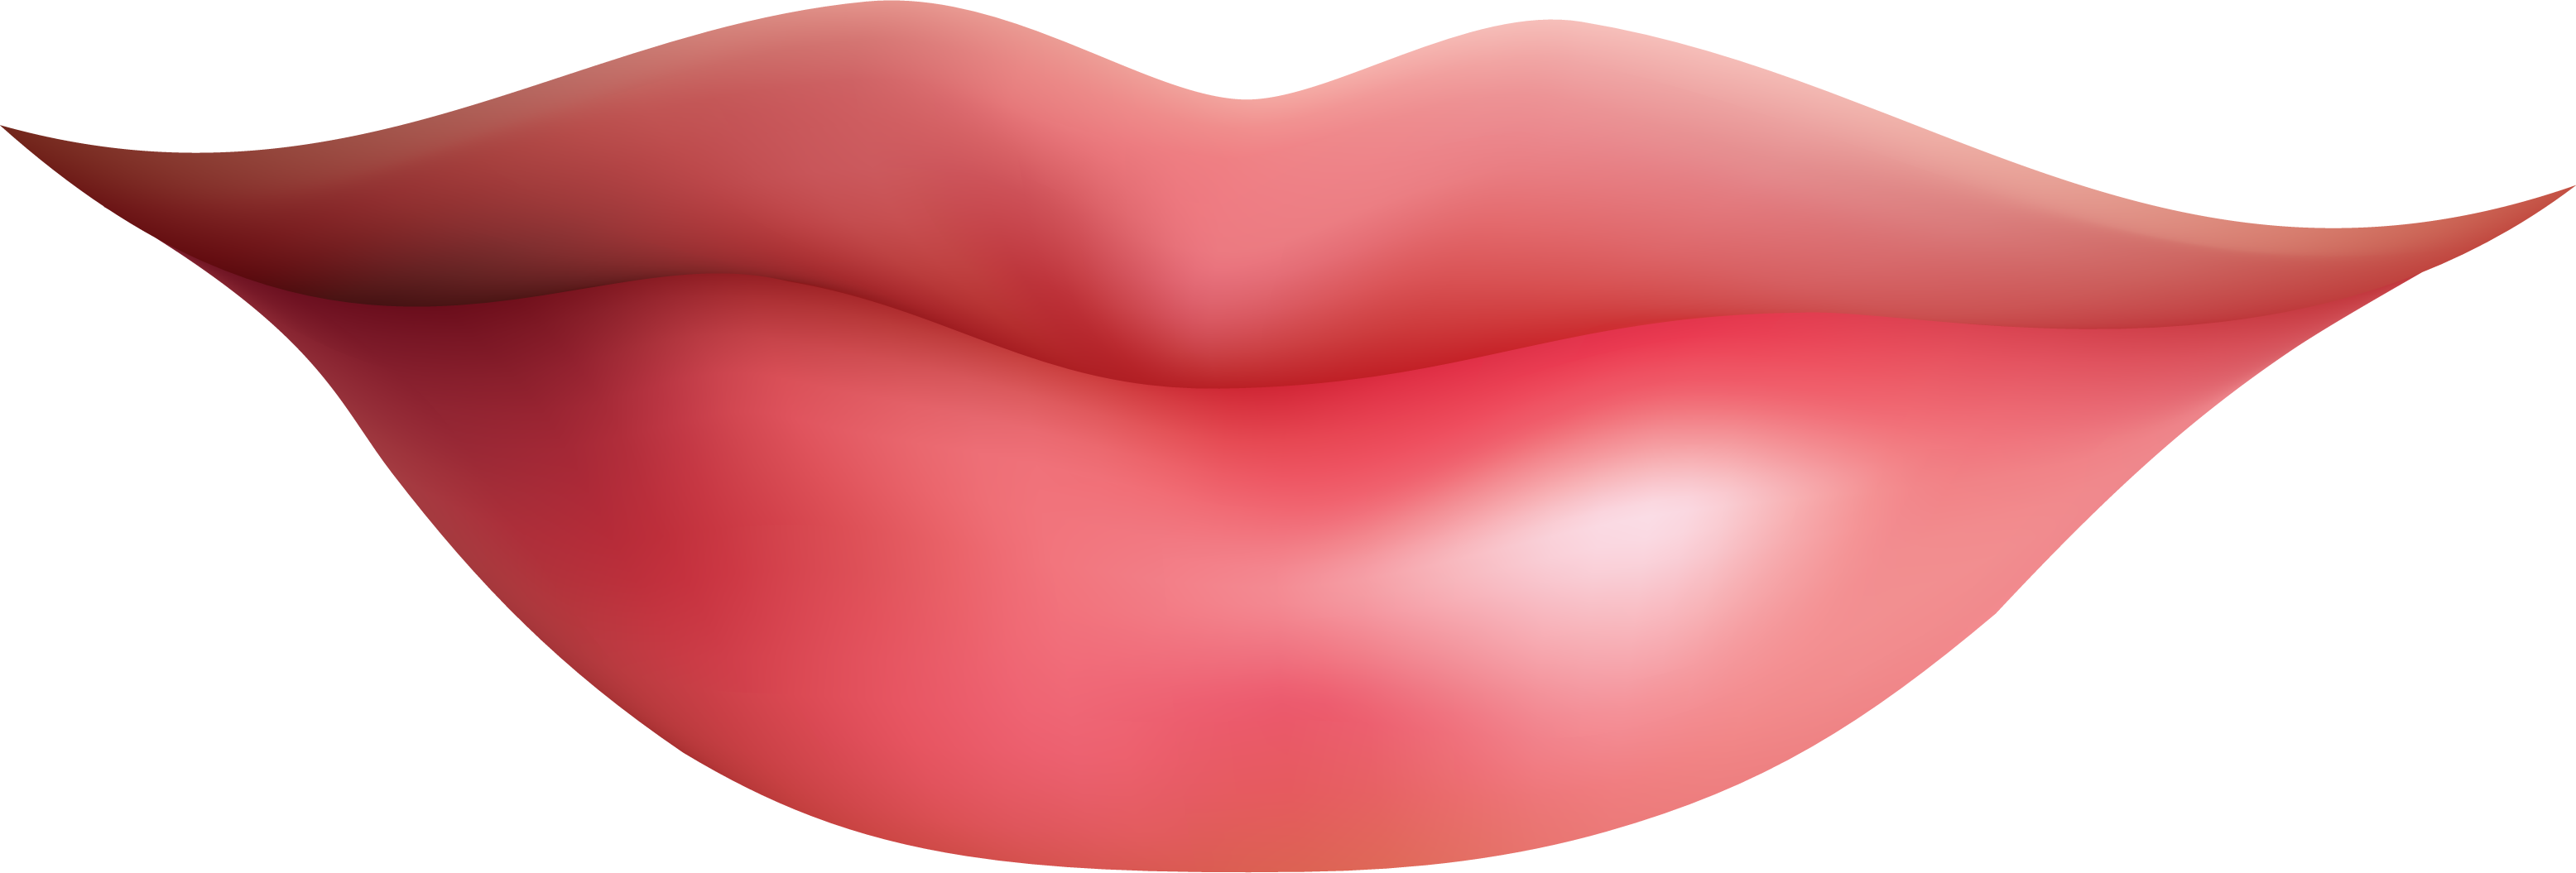 Clipart lips clipart image - Shhh Lips PNG